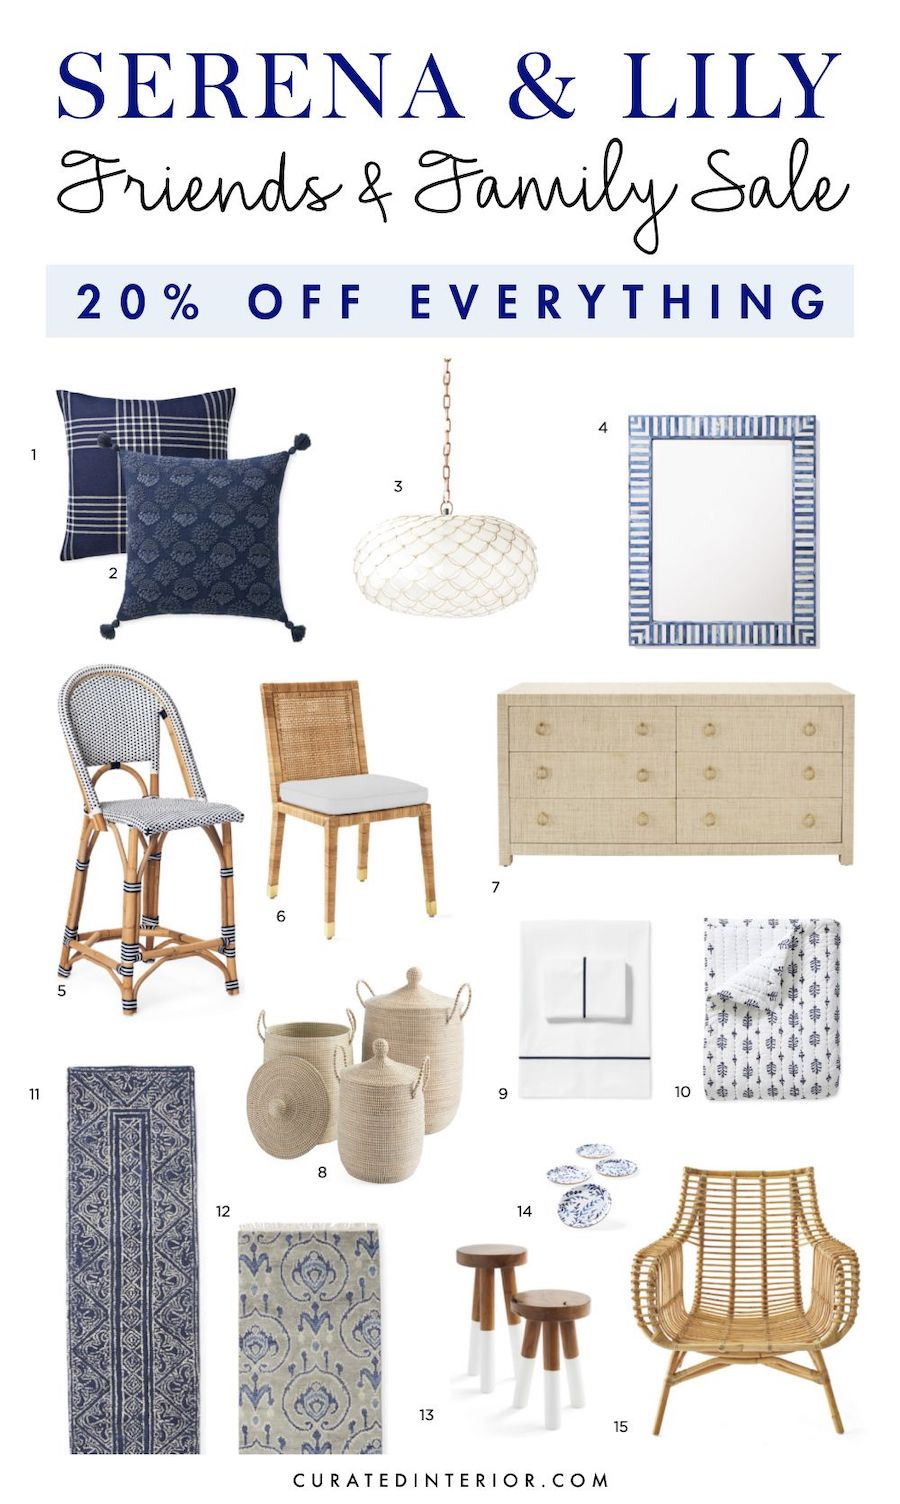 Coastal Furniture and Decor from Serena and Lily Friends and Family Sale